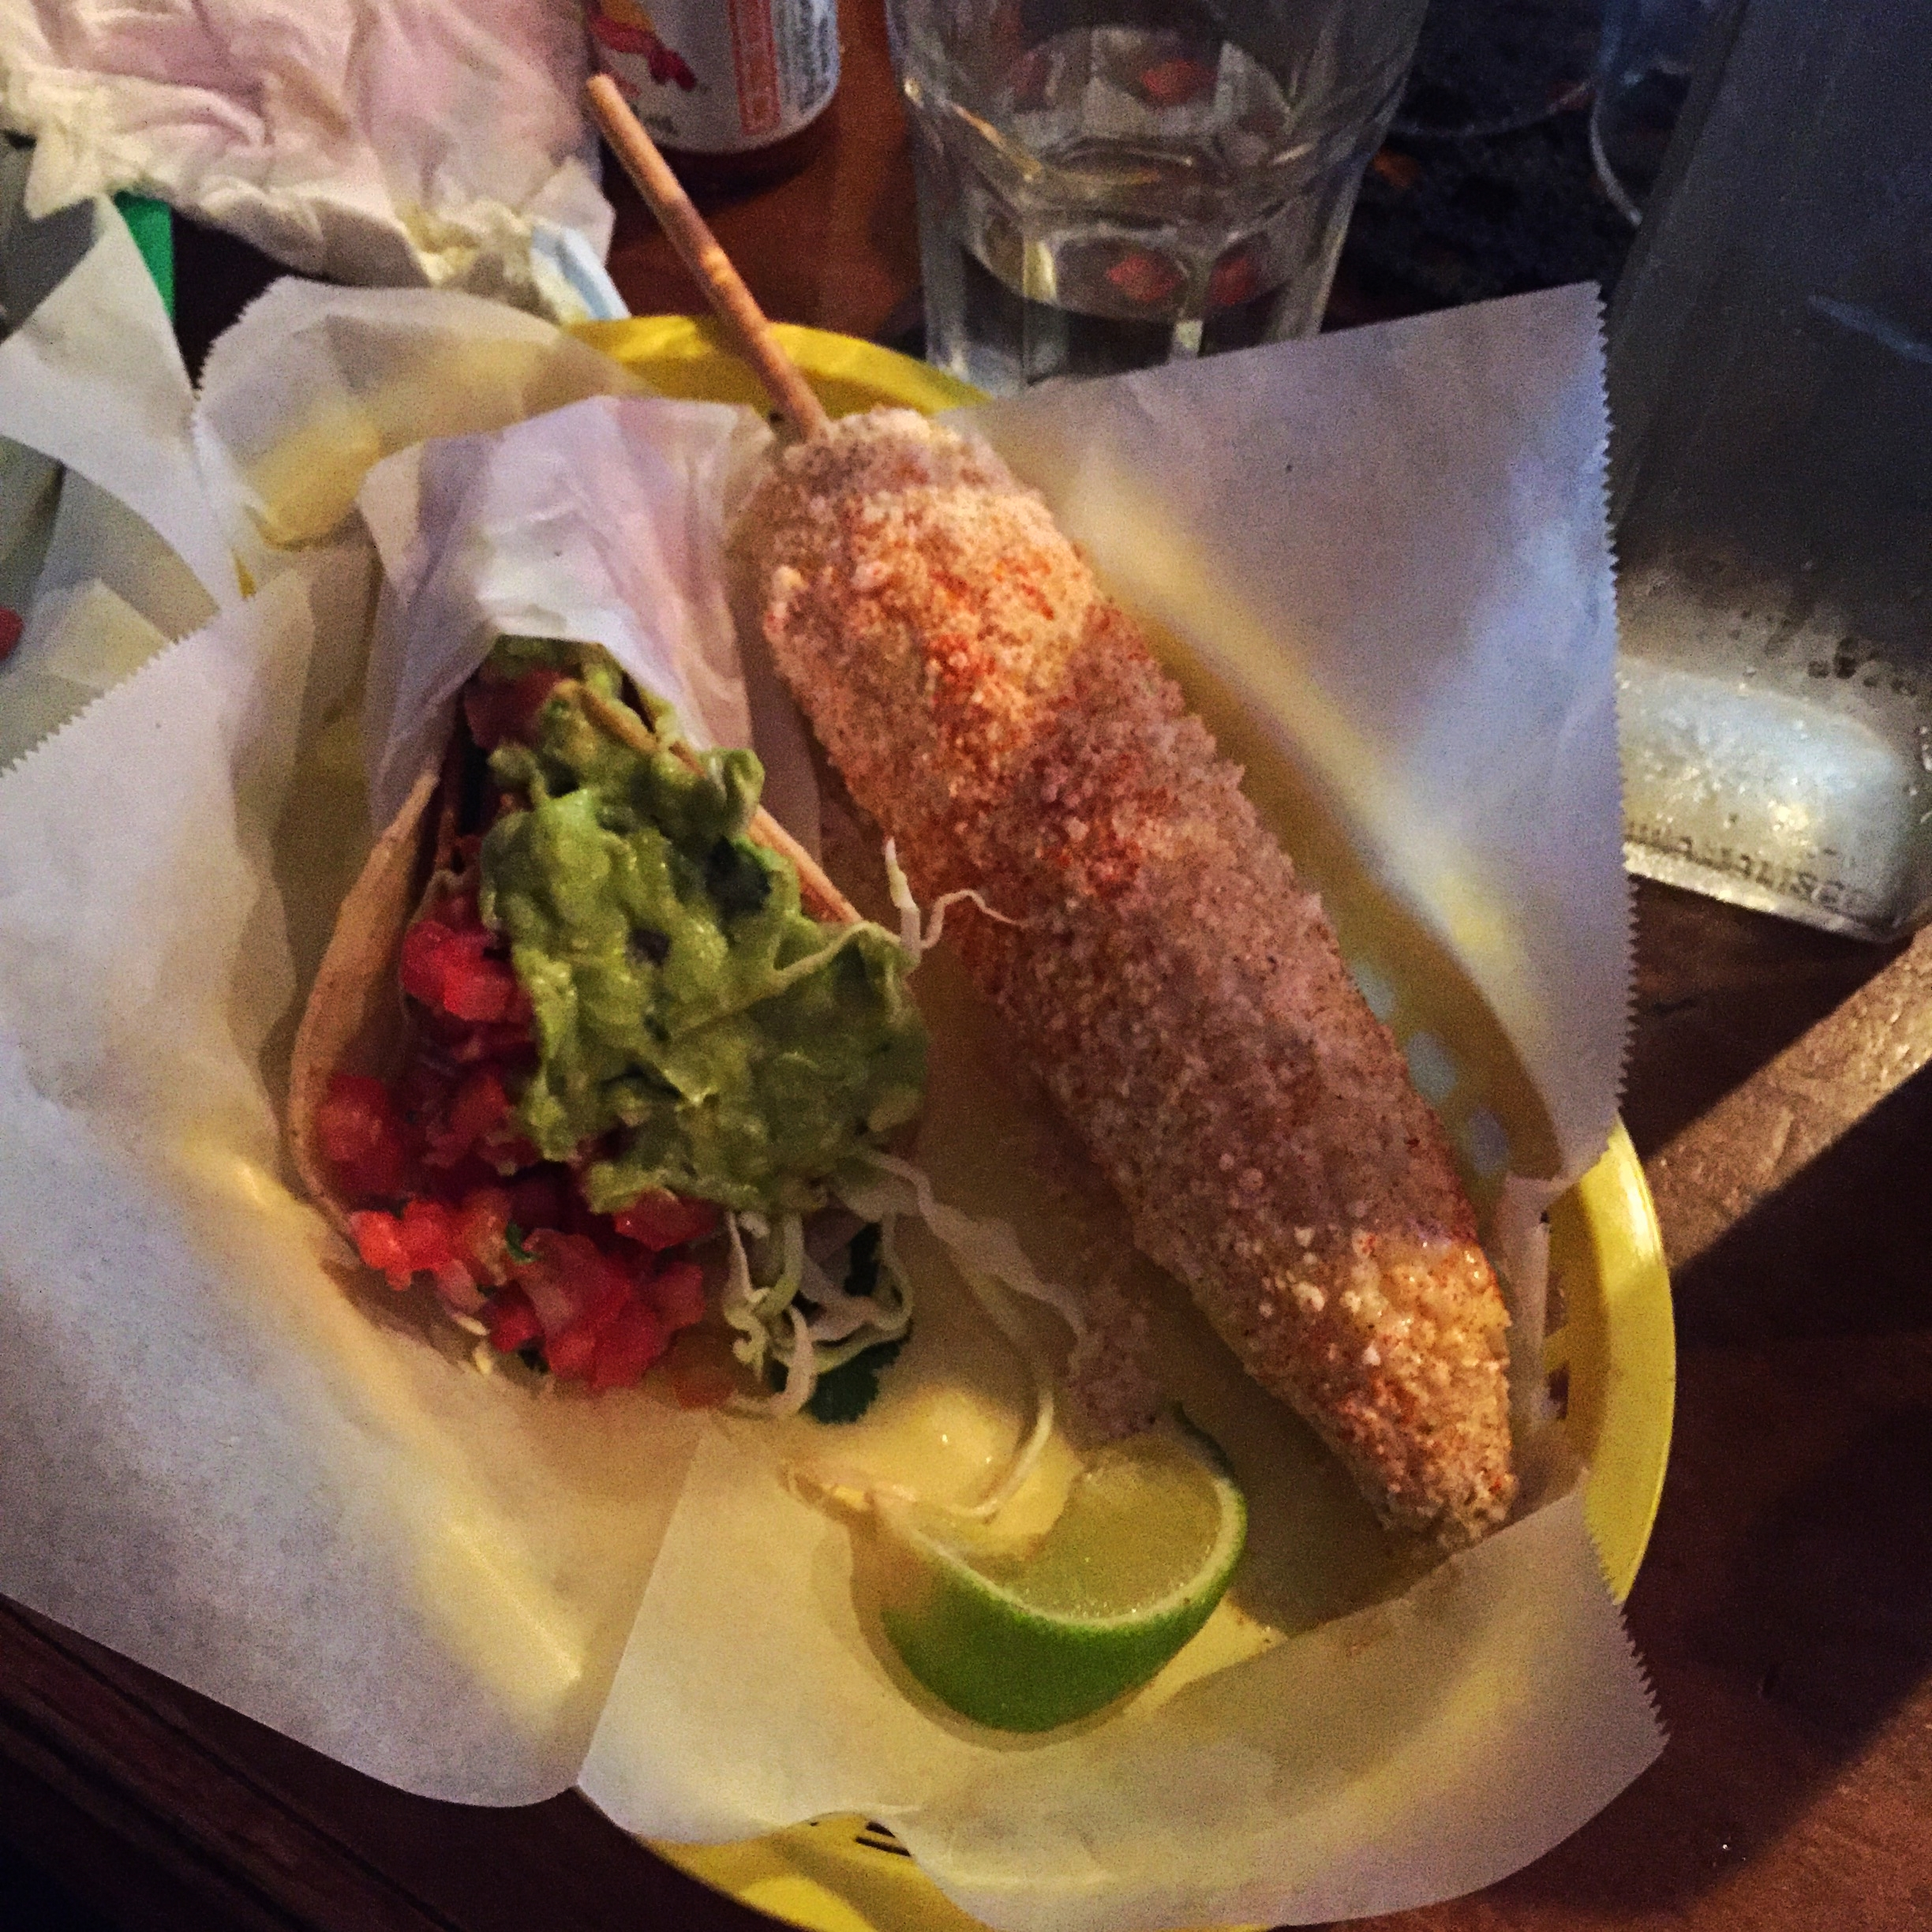 veggie taco/nick's style and elote corn